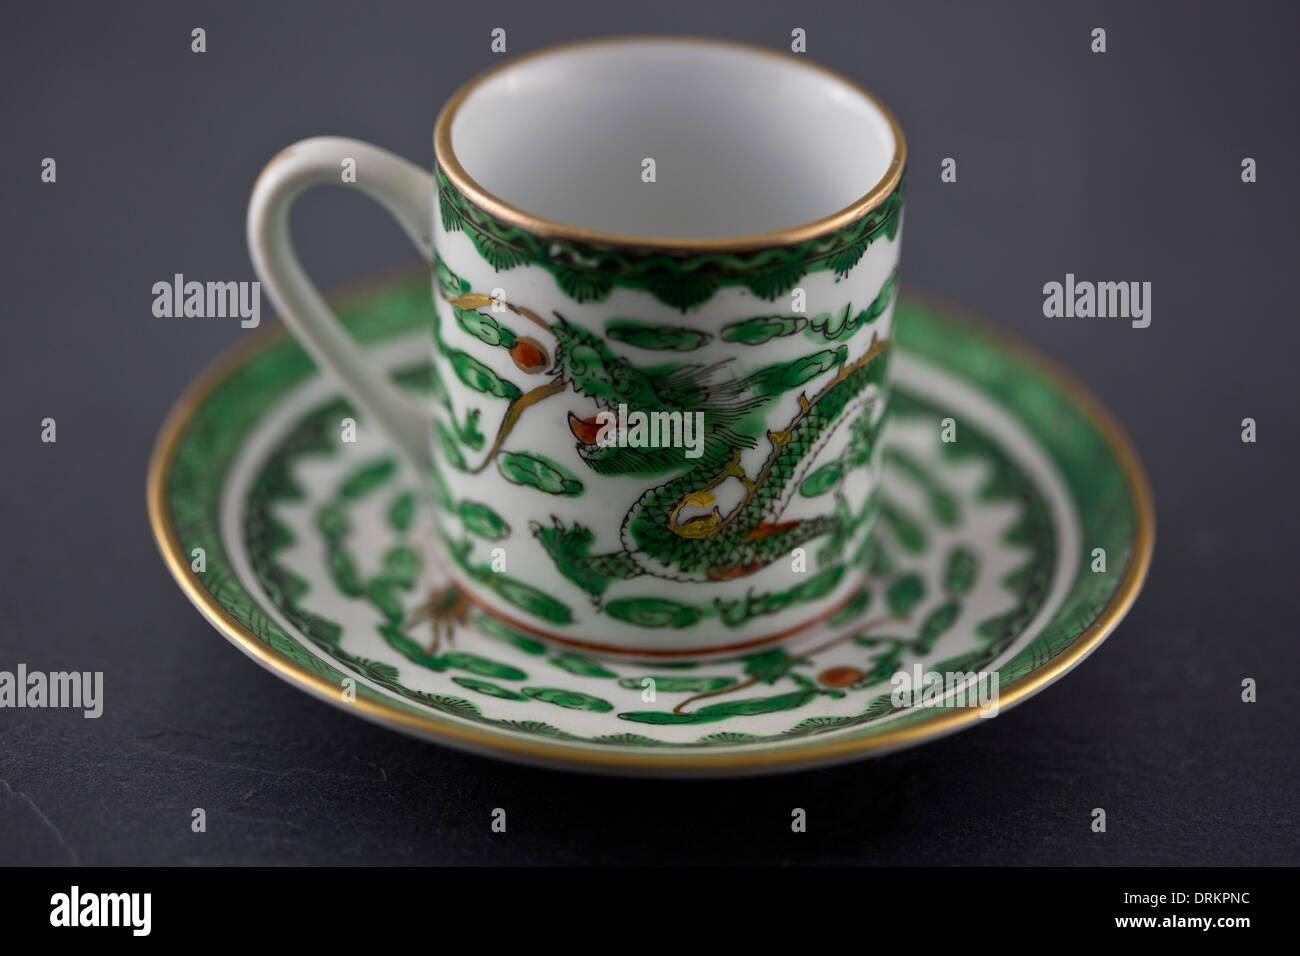 Chinese teacup and saucer with dragon pattern - Stock Image